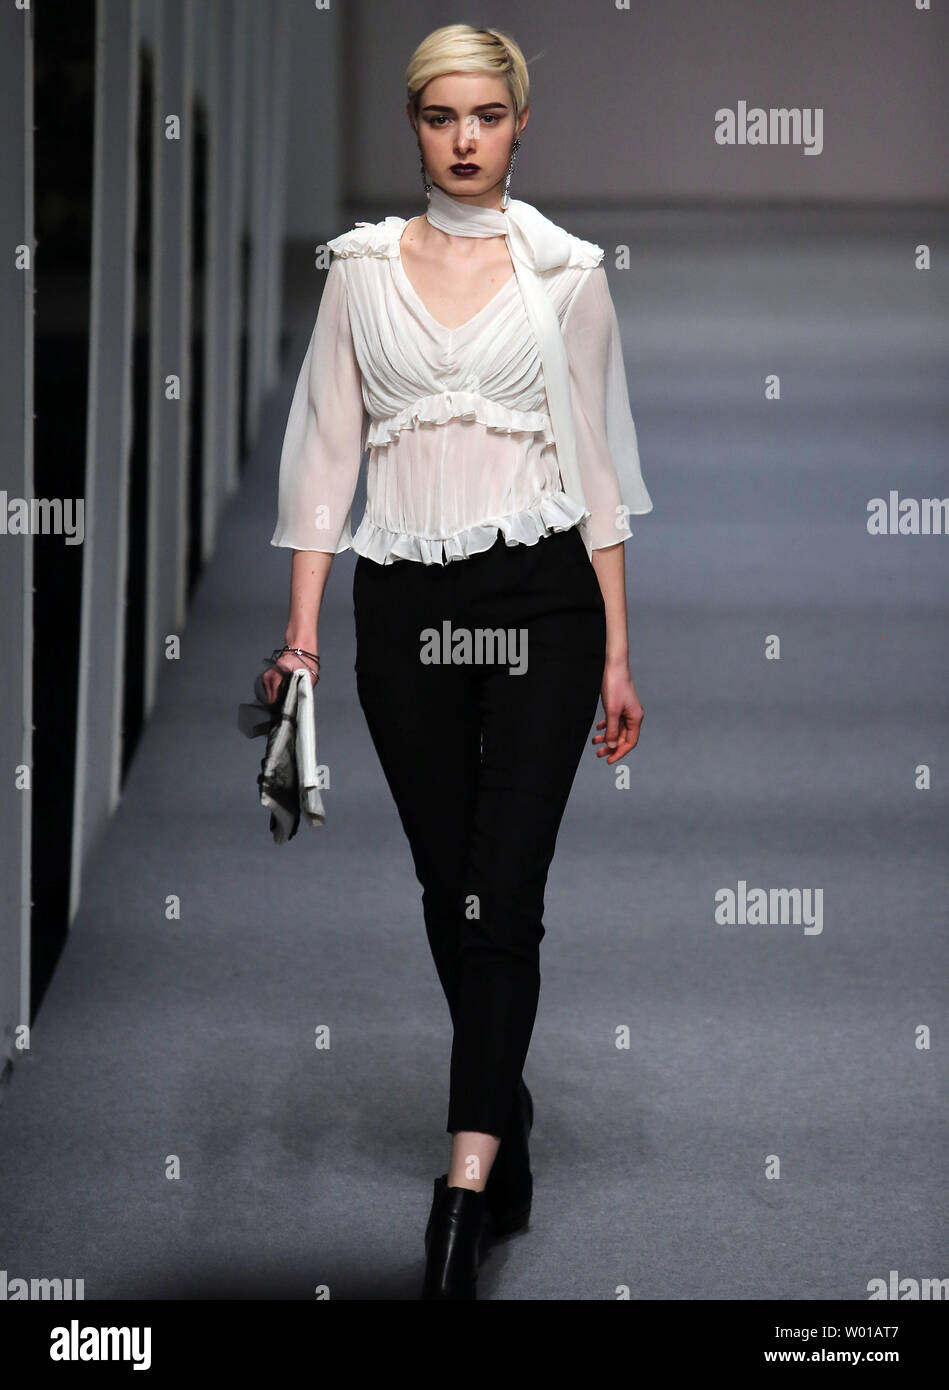 Models Showcase Fashion Designs By Zoual Yanti During China S Fashion Week In Beijing On March 31 2016 Chinese Fashion Designers Are Becoming An International Force With Both European And American Fashion Houses